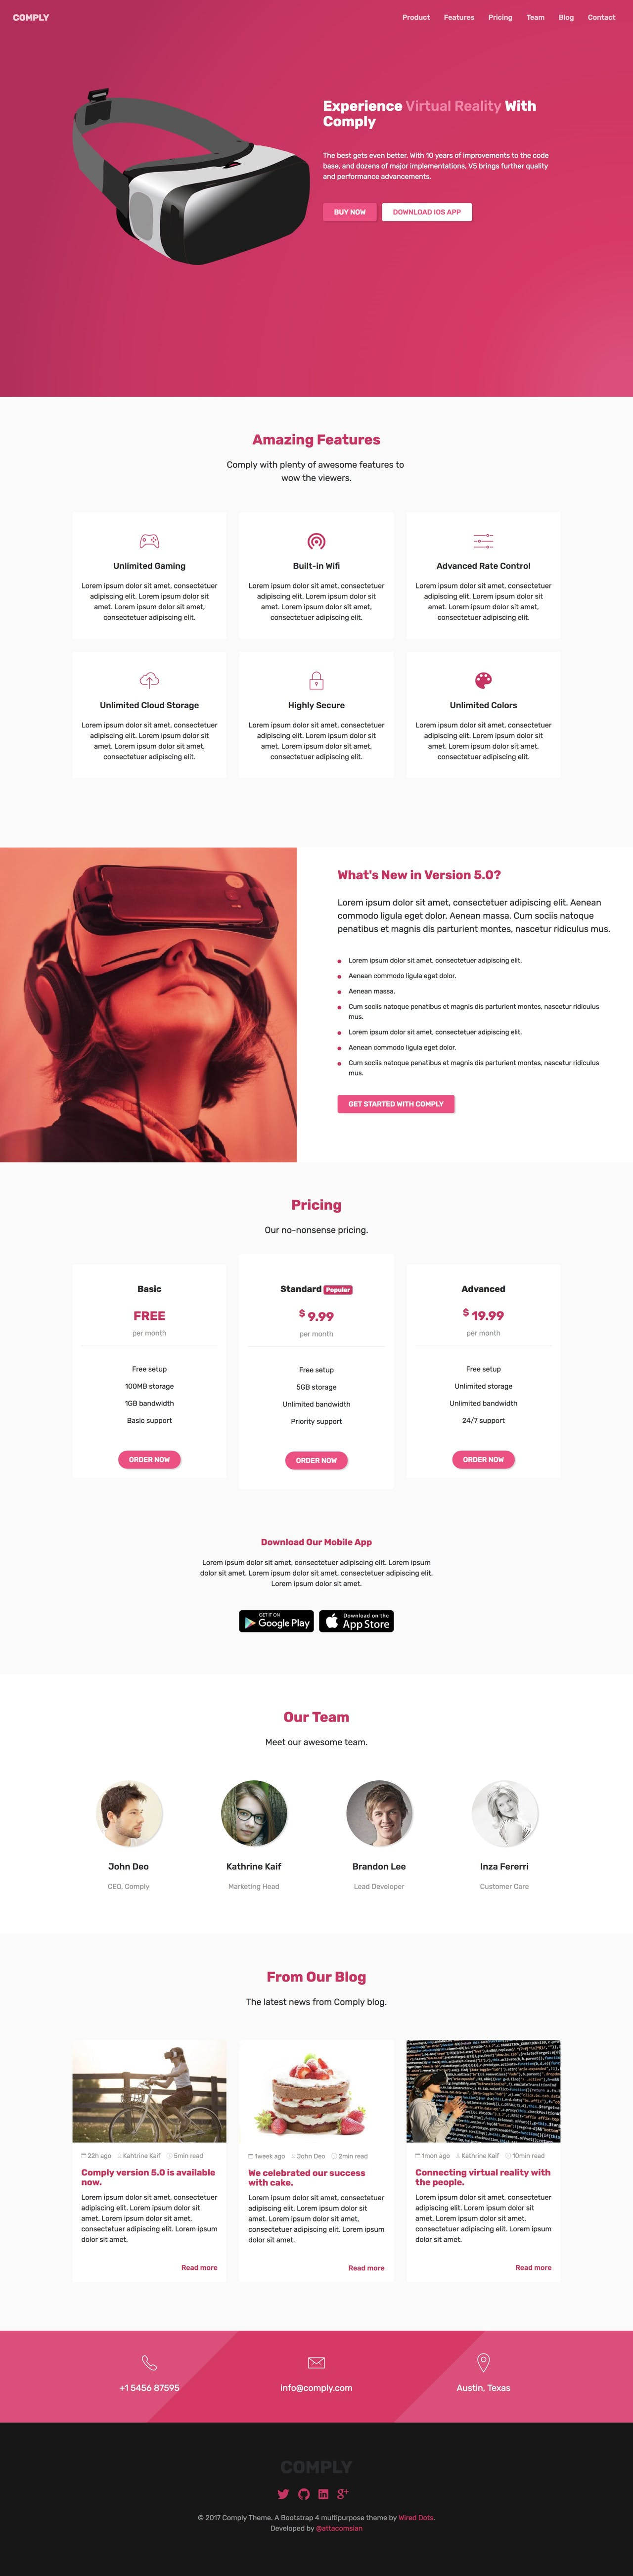 Comply - landing page HTML template